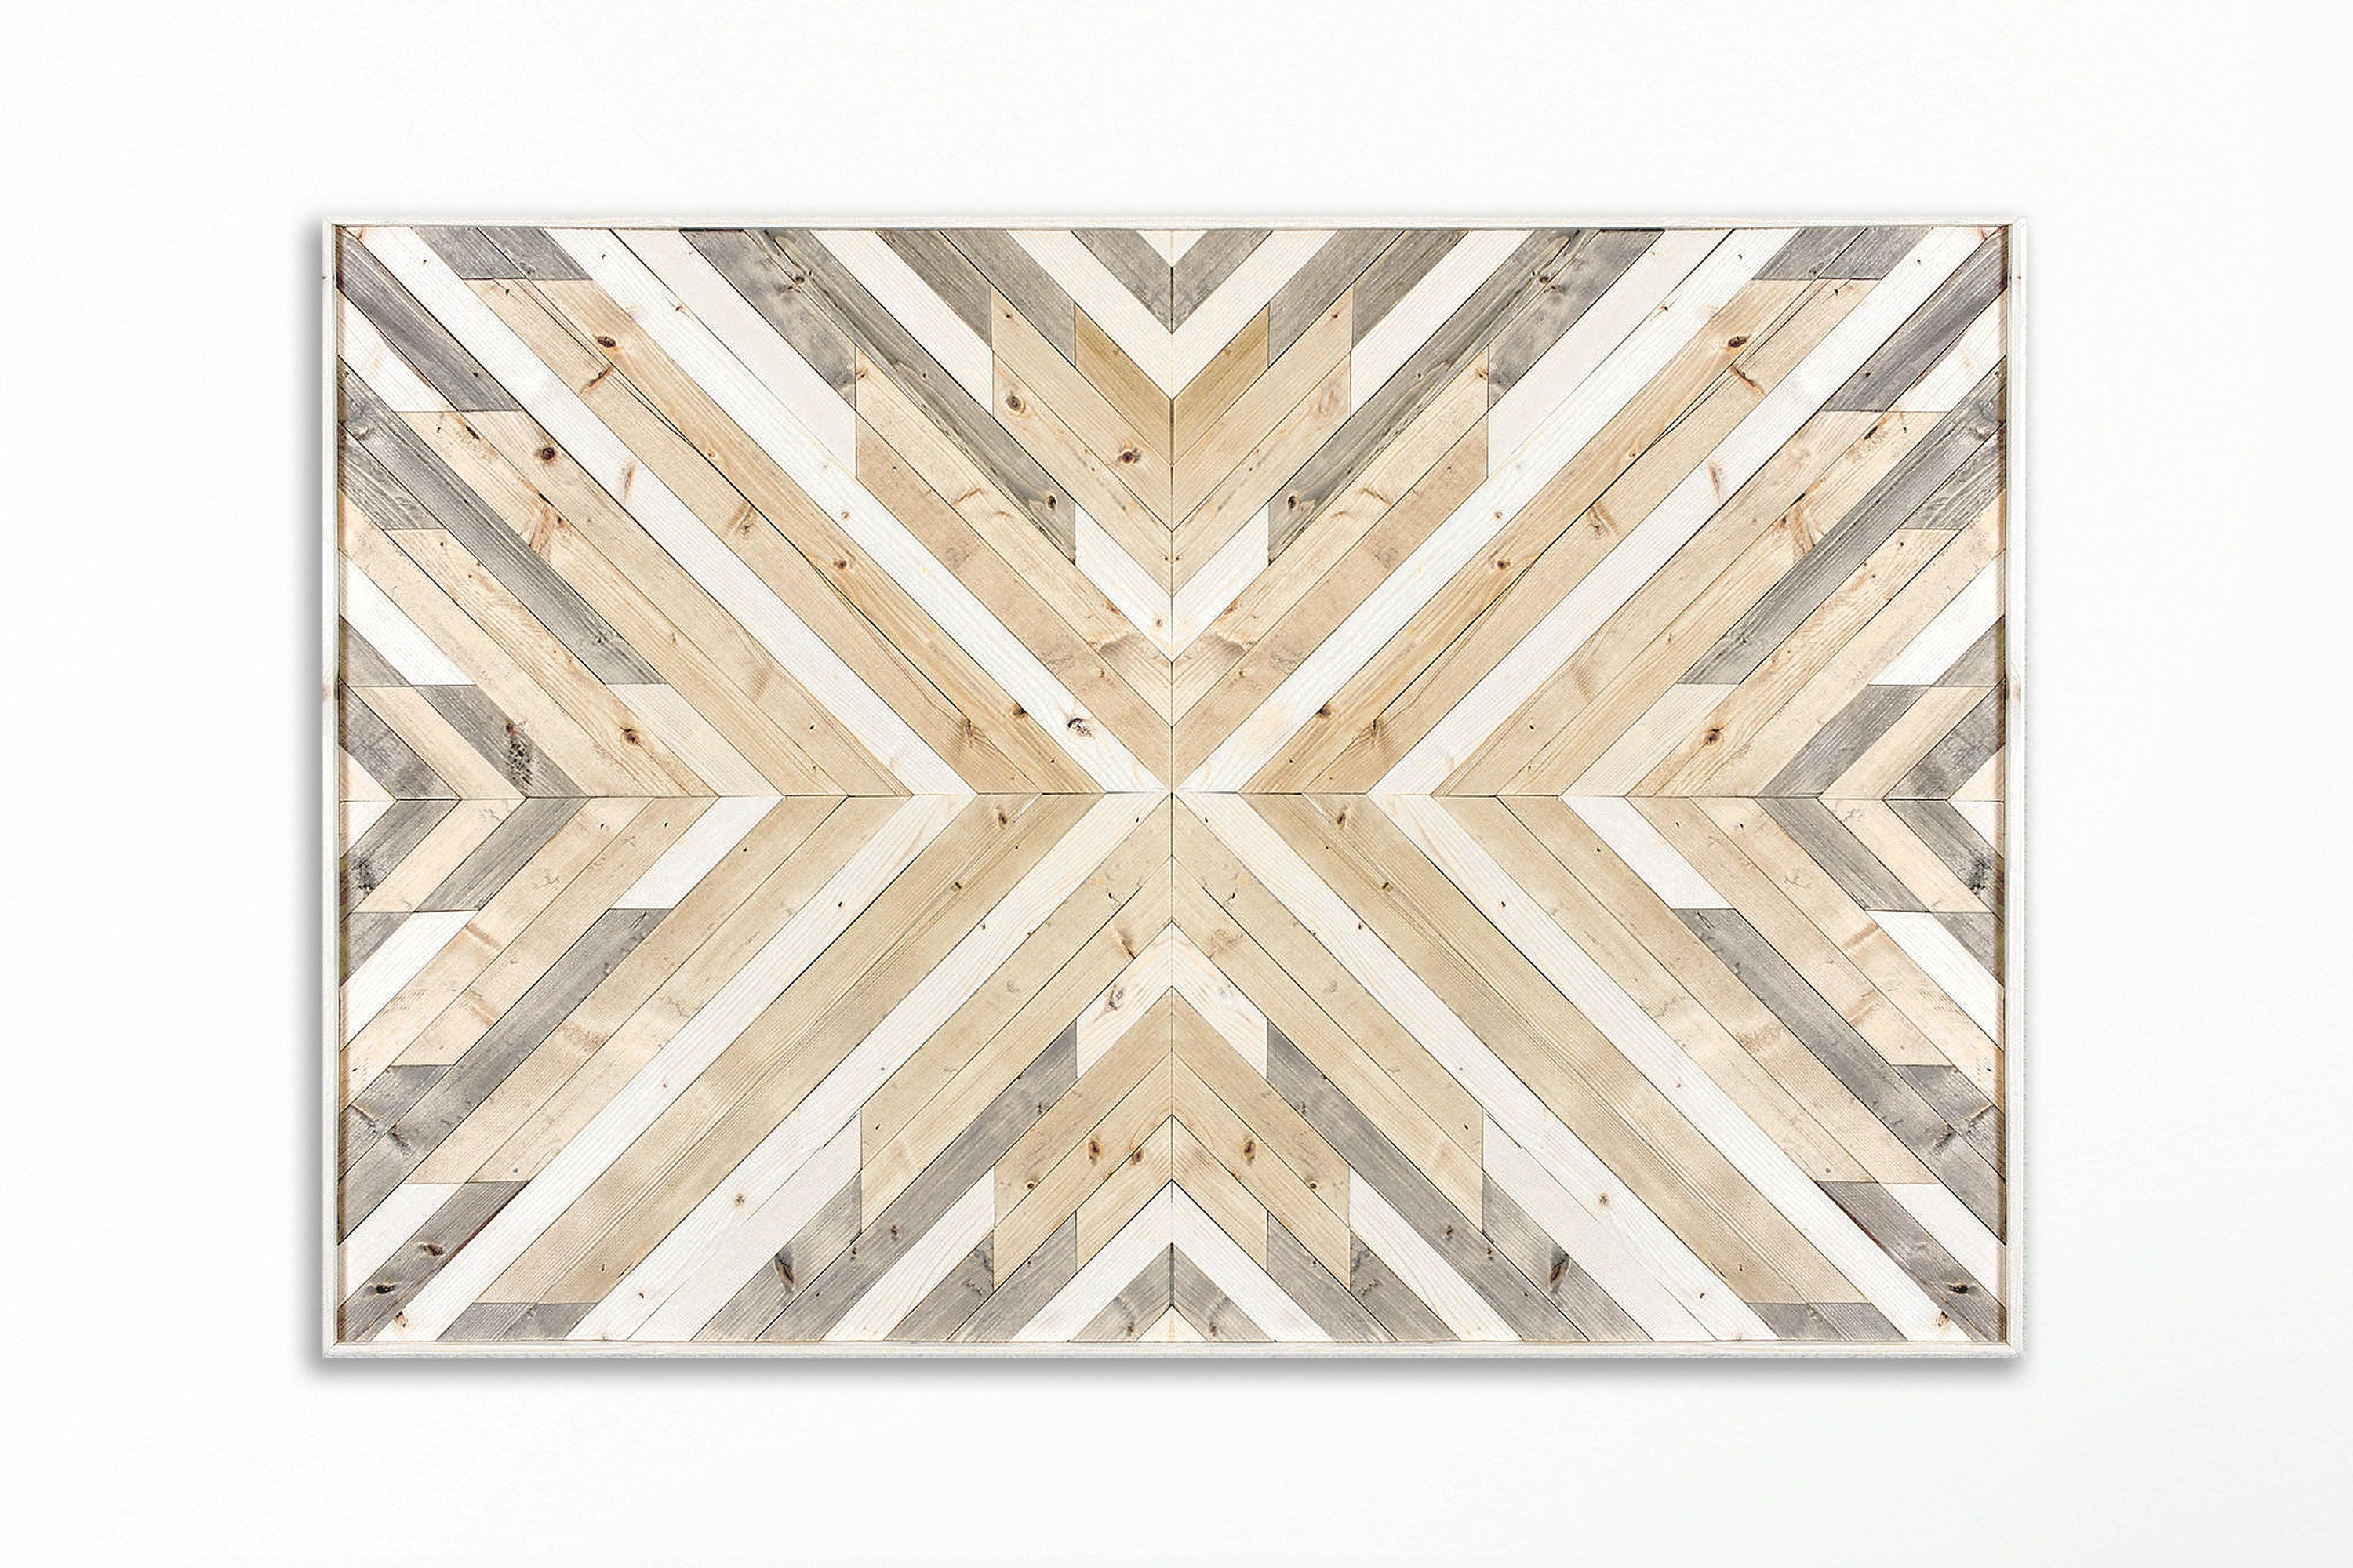 White Wood Wall Art Wood Wall Art Large Wall Art Wooden Wall Art Wooden Wall